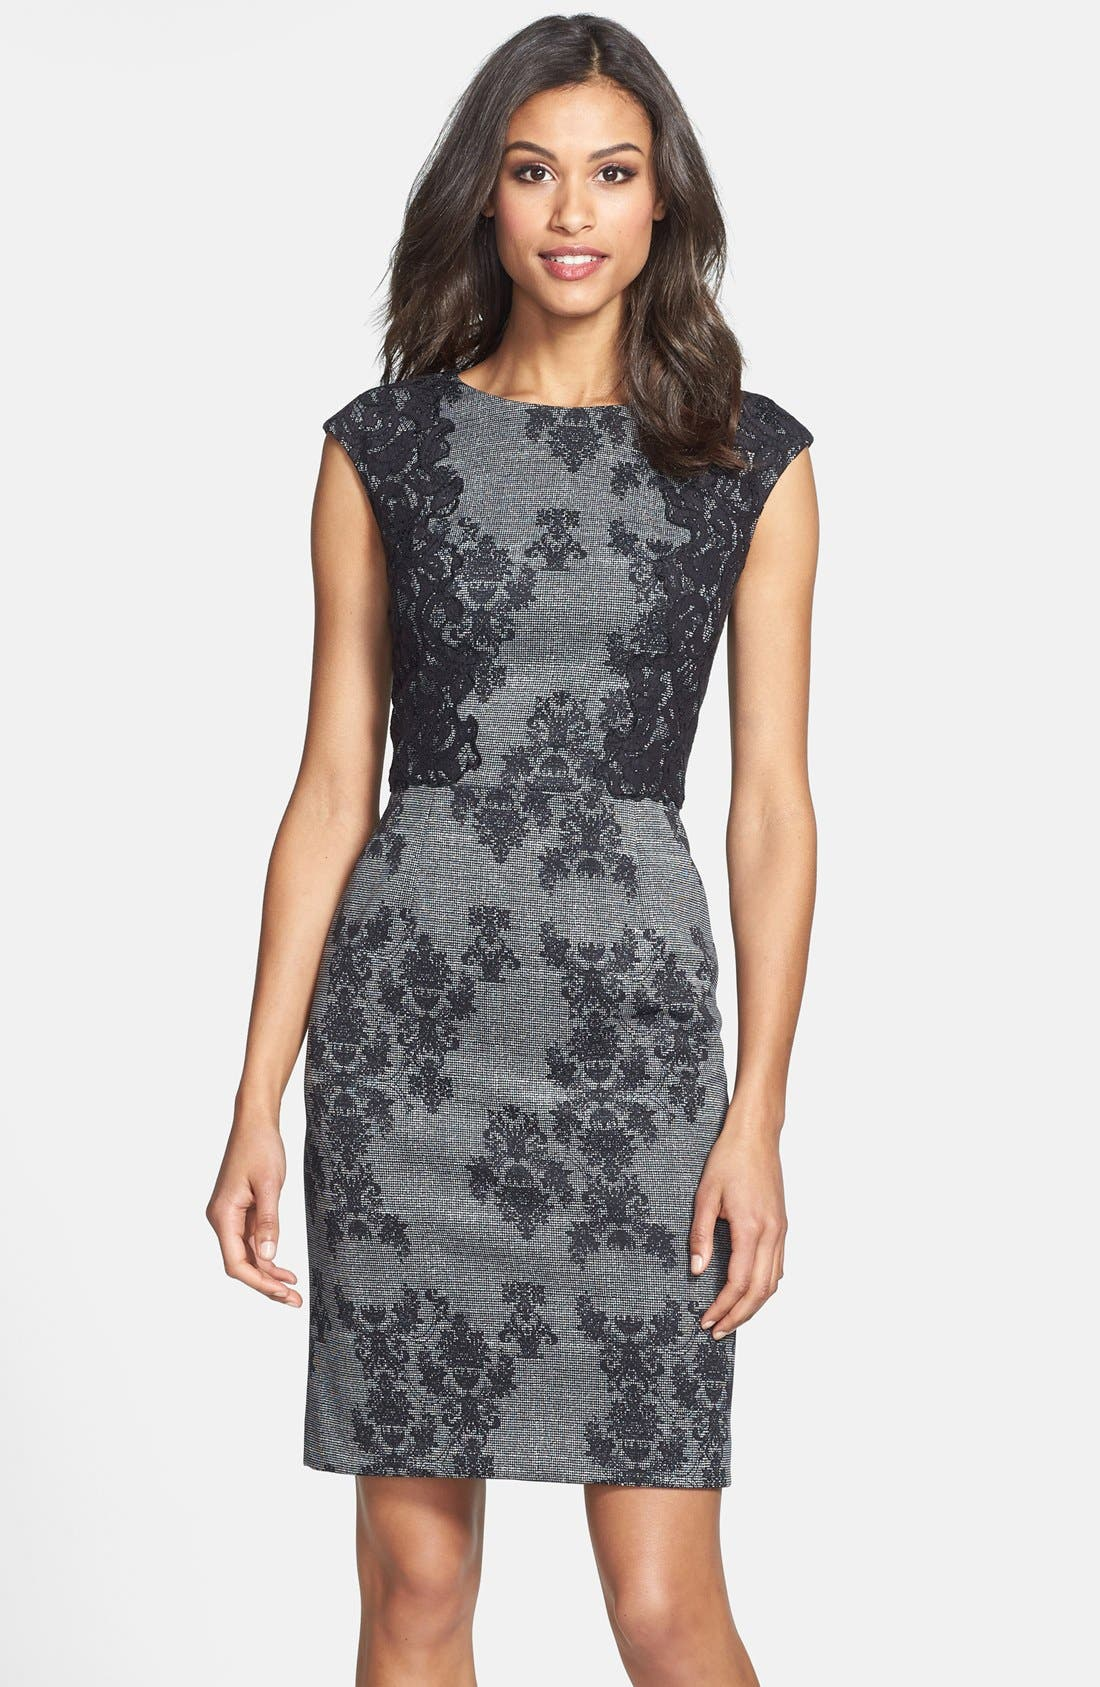 Alternate Image 1 Selected - Adrianna Papell Placed & Print Lace Sheath Dress (Regular & Petite)